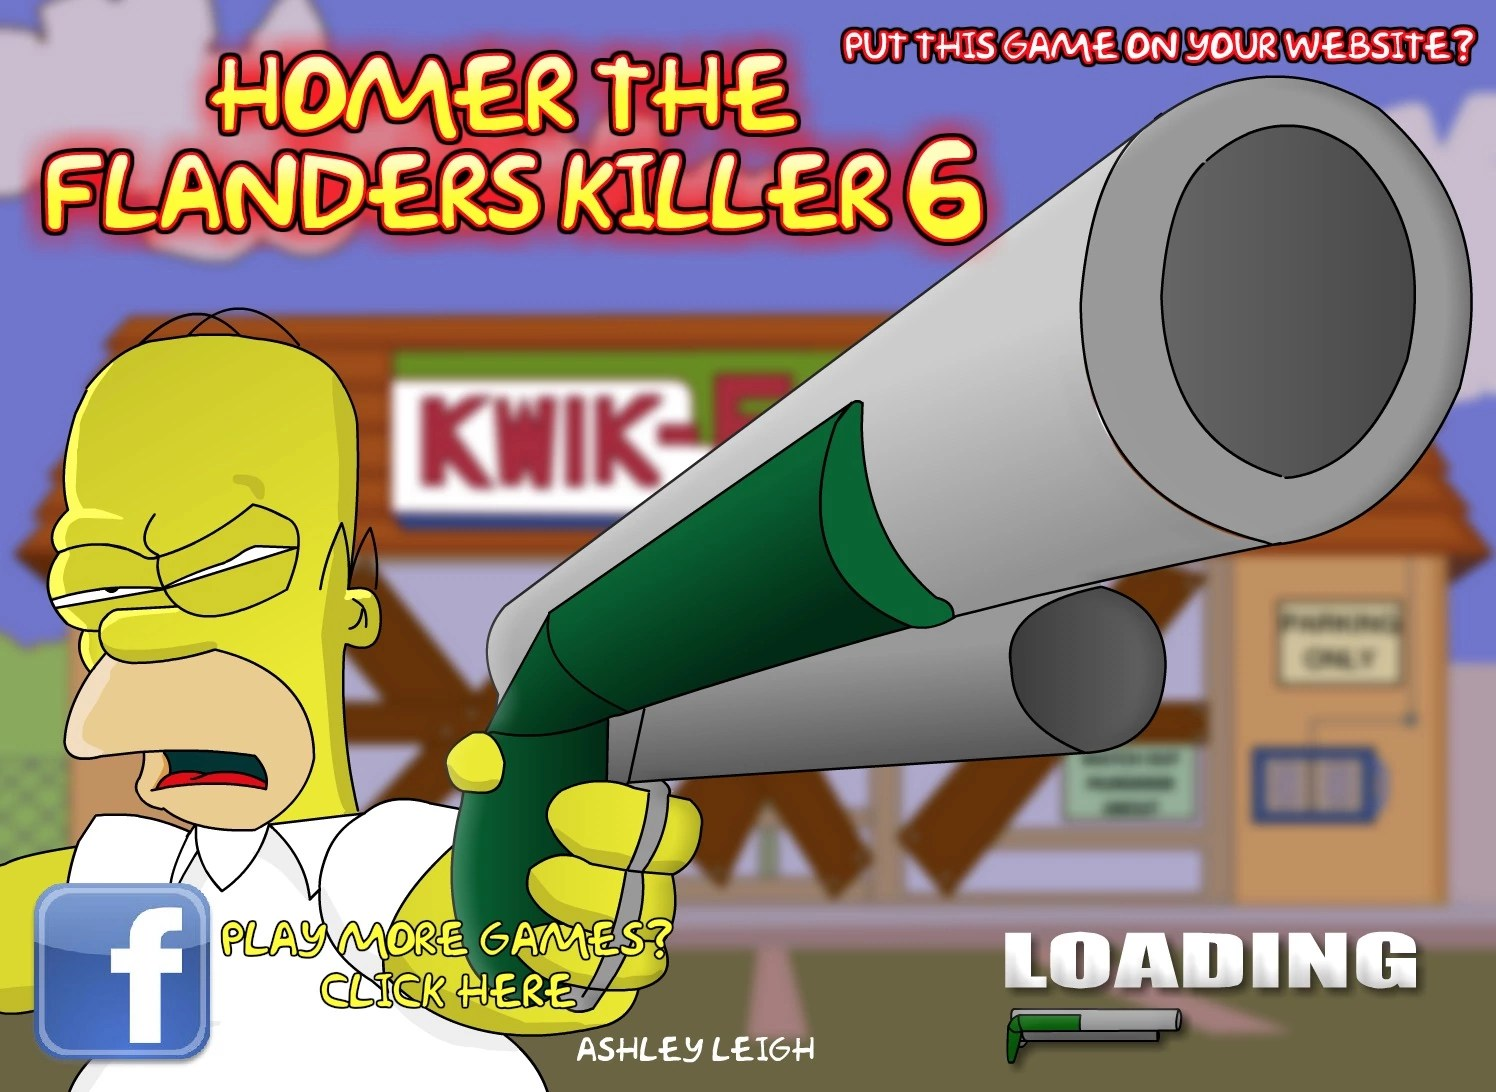 Homer and Flanders Killer 6